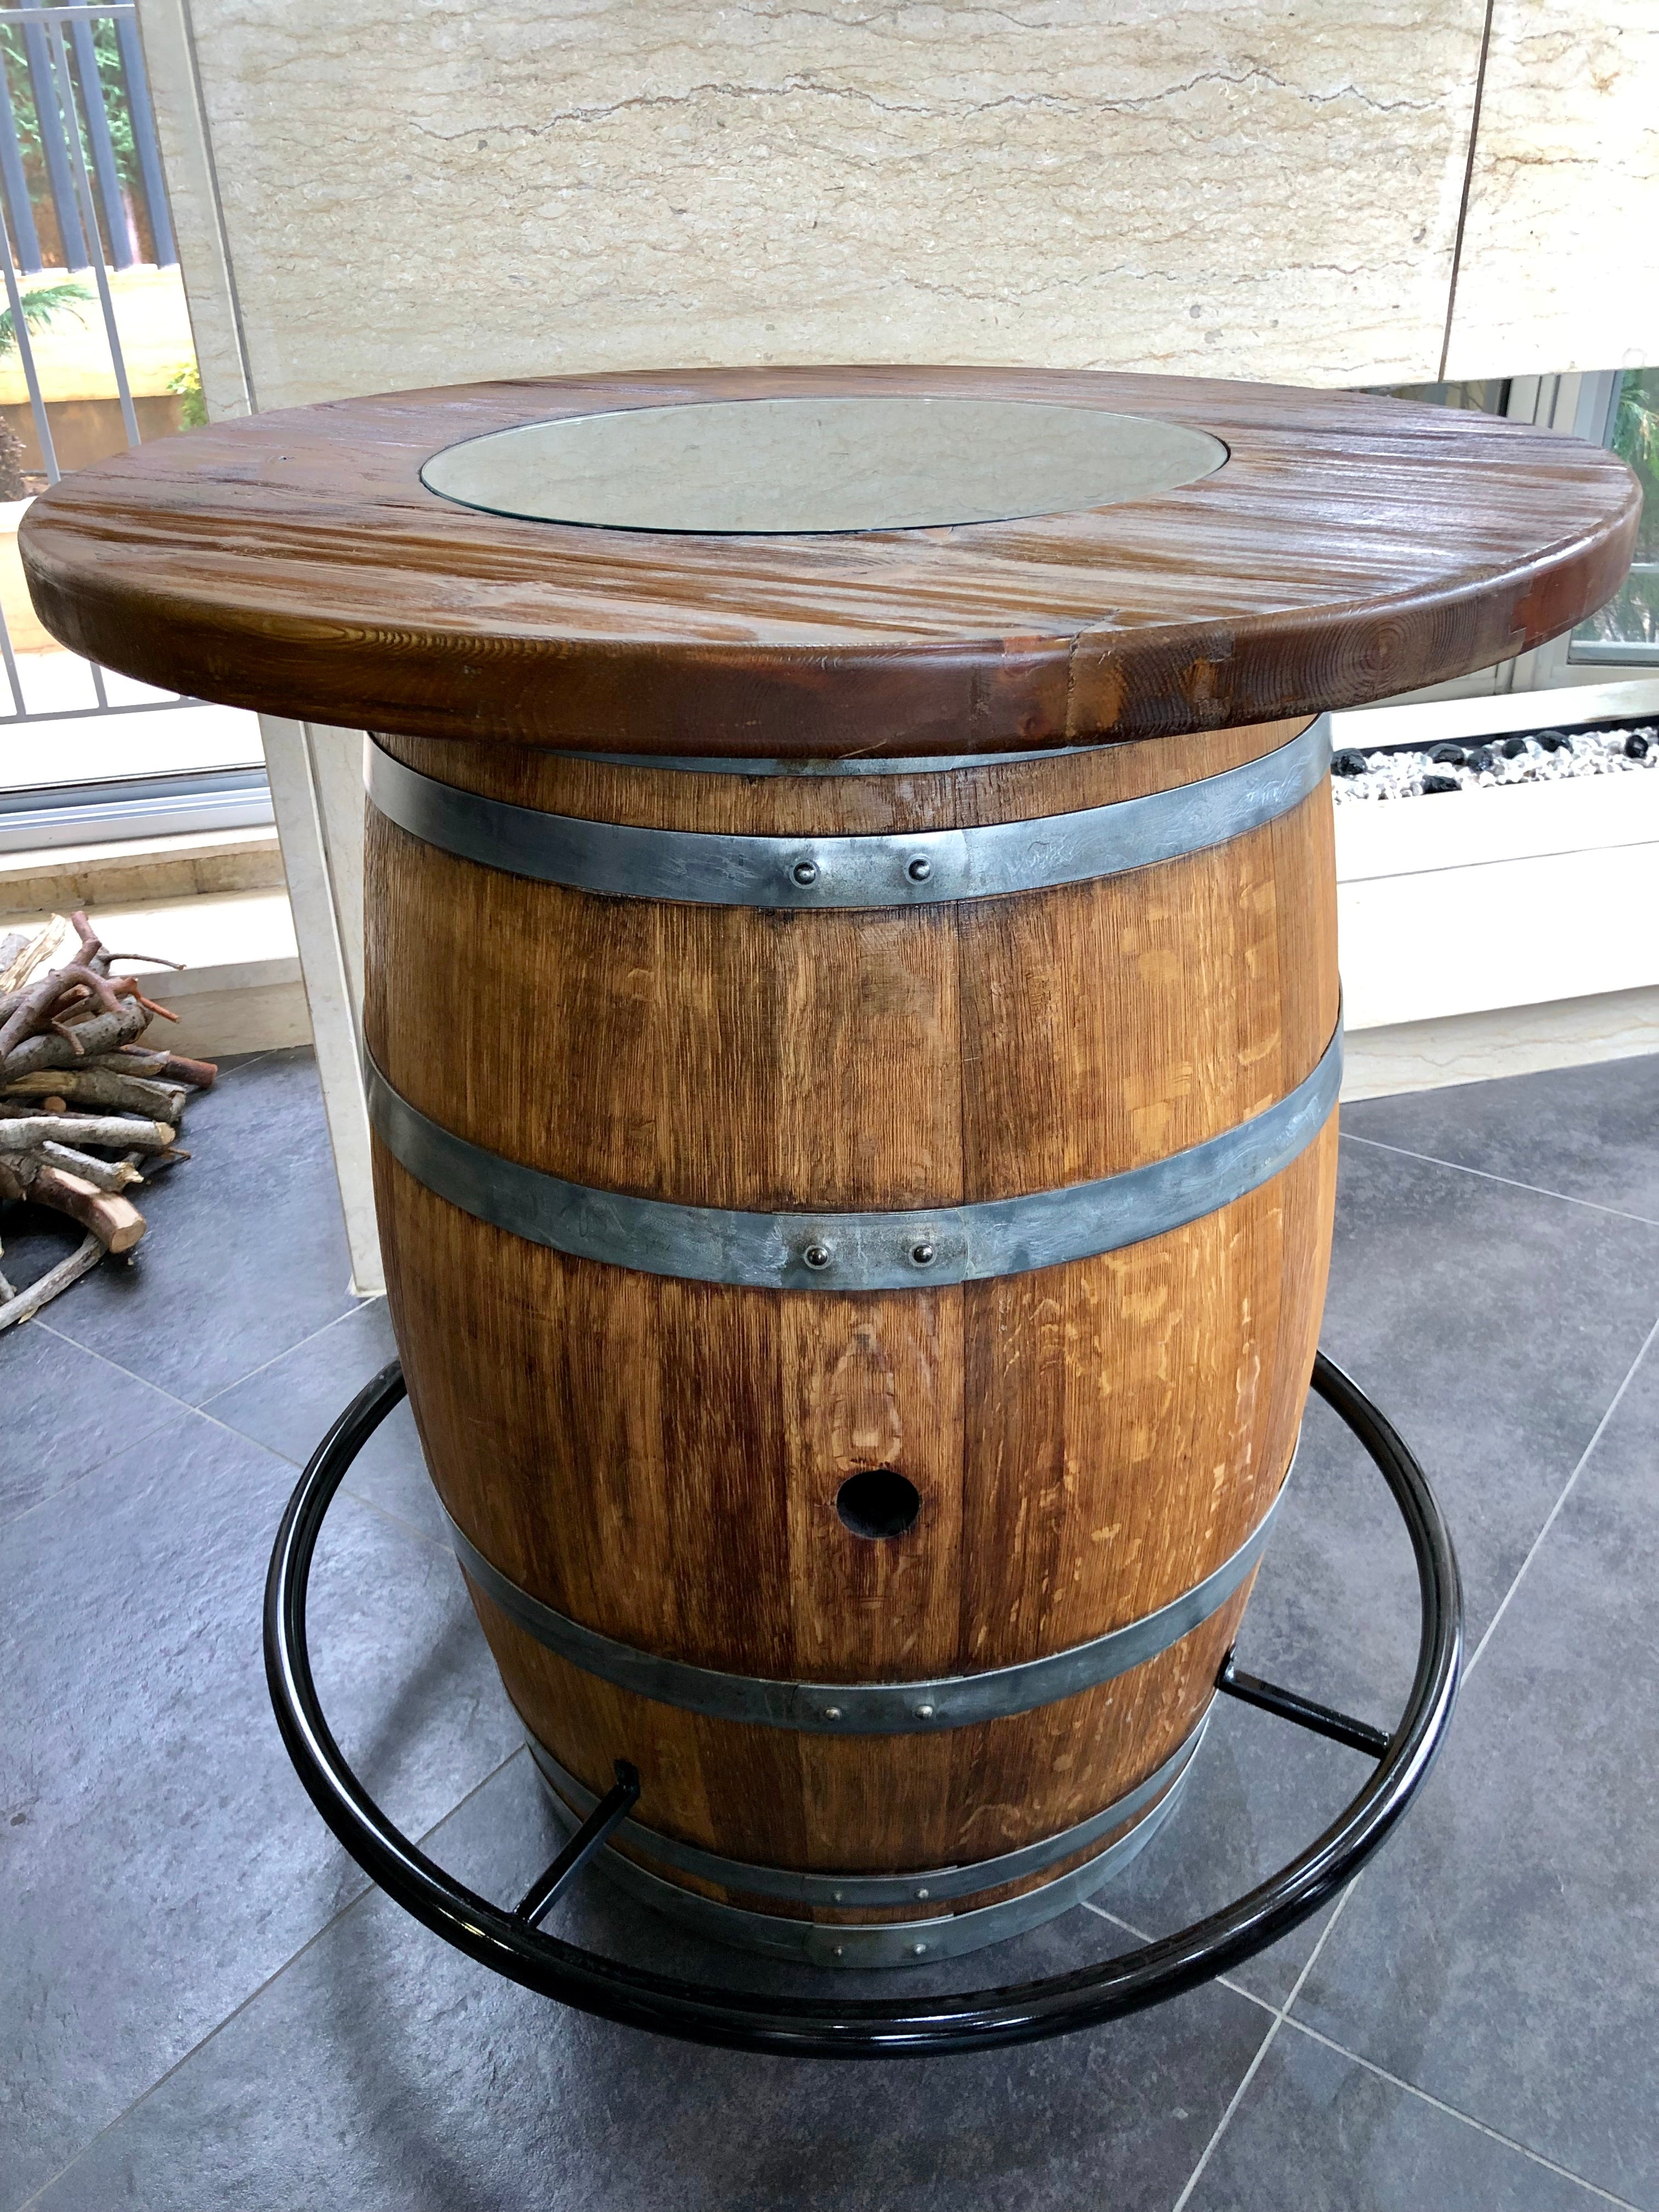 Vintage Handmade Oak Barrel Furniture - Wine Barrel Chair, Bar, Wine Barrel Coffee Table, Whiskey Barrel Furniture, Man Cave Ideas, Poker Table, Wine Rack